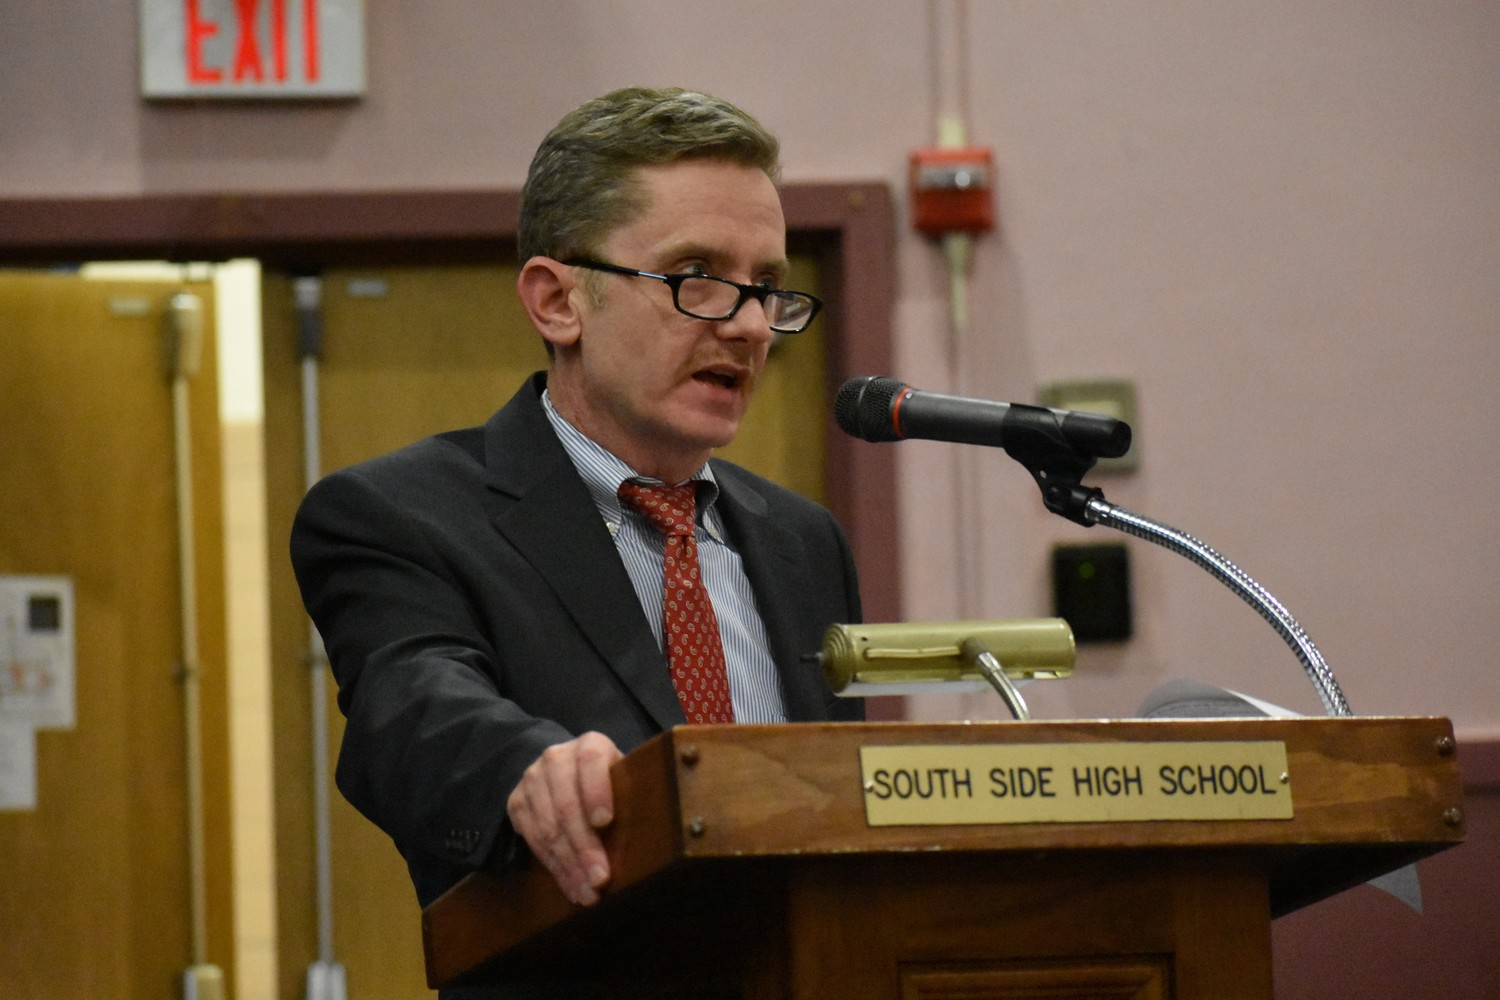 South Side High School Principal John Murphy said the school district was working hard to ed-ucate students while not overworking them.